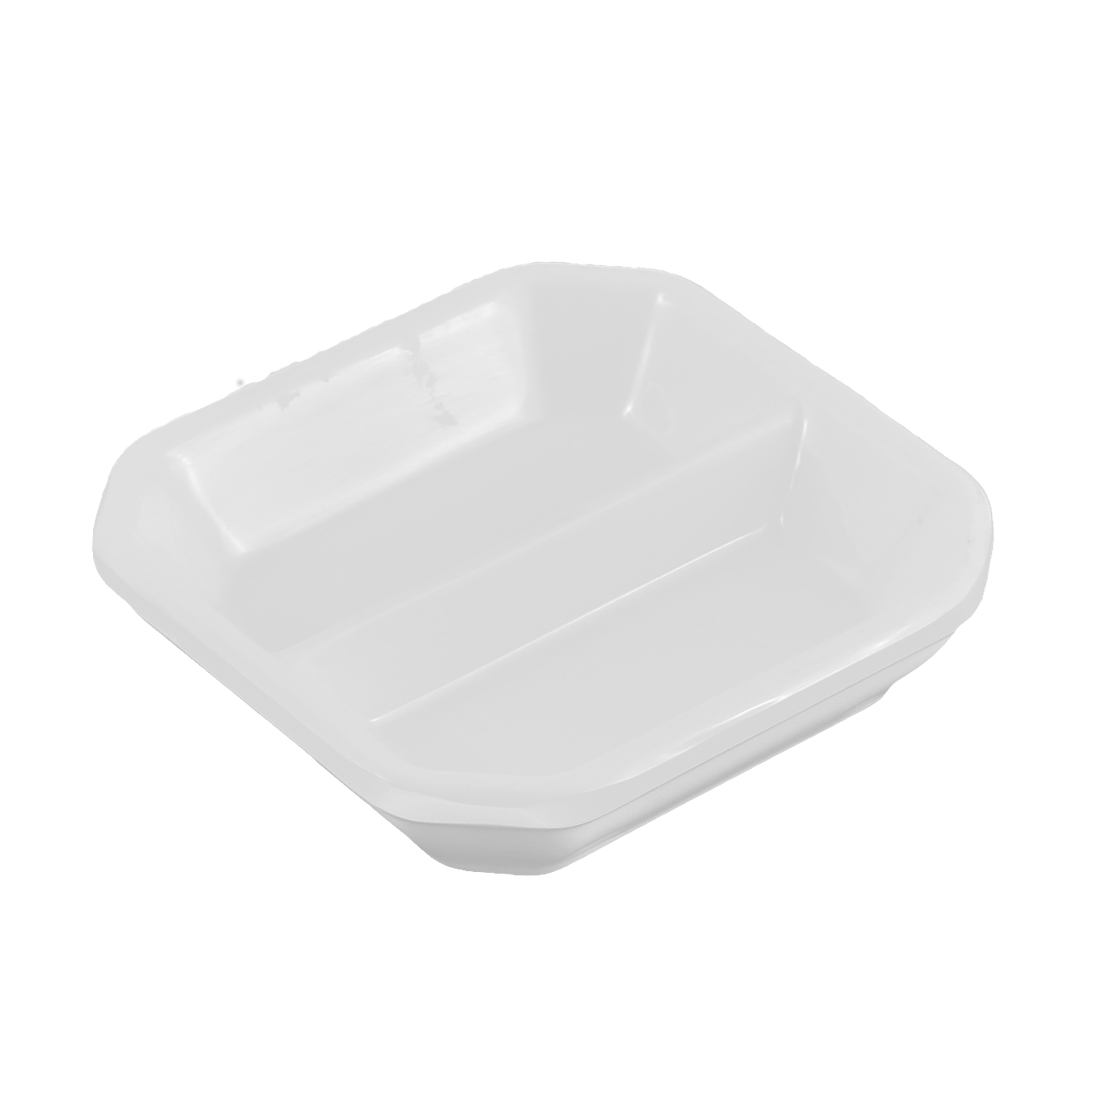 Plastic Square Design 2 Slots Sushi Soy Sauce Wasabi Serving Dipping Dish Plate